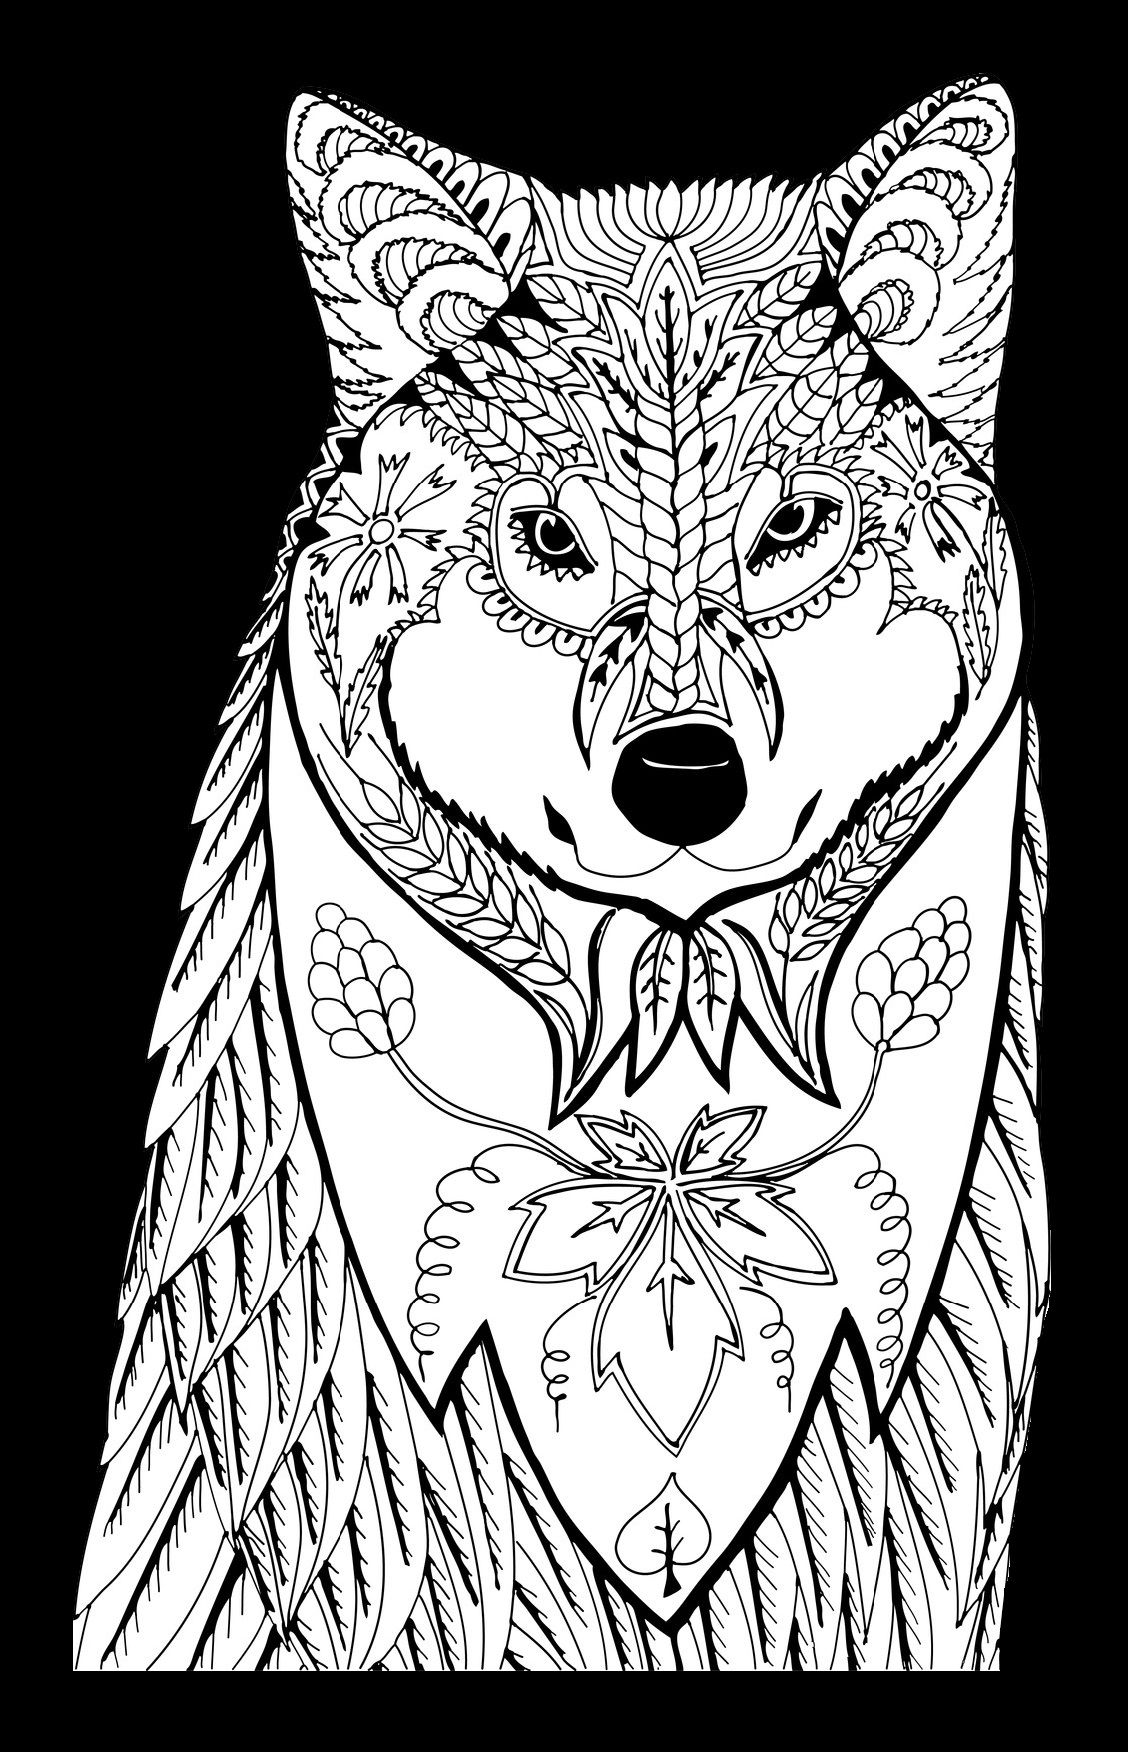 Wolves Coloring On Black Pages Animal Coloring Books Wolf Colors Animal Coloring Pages